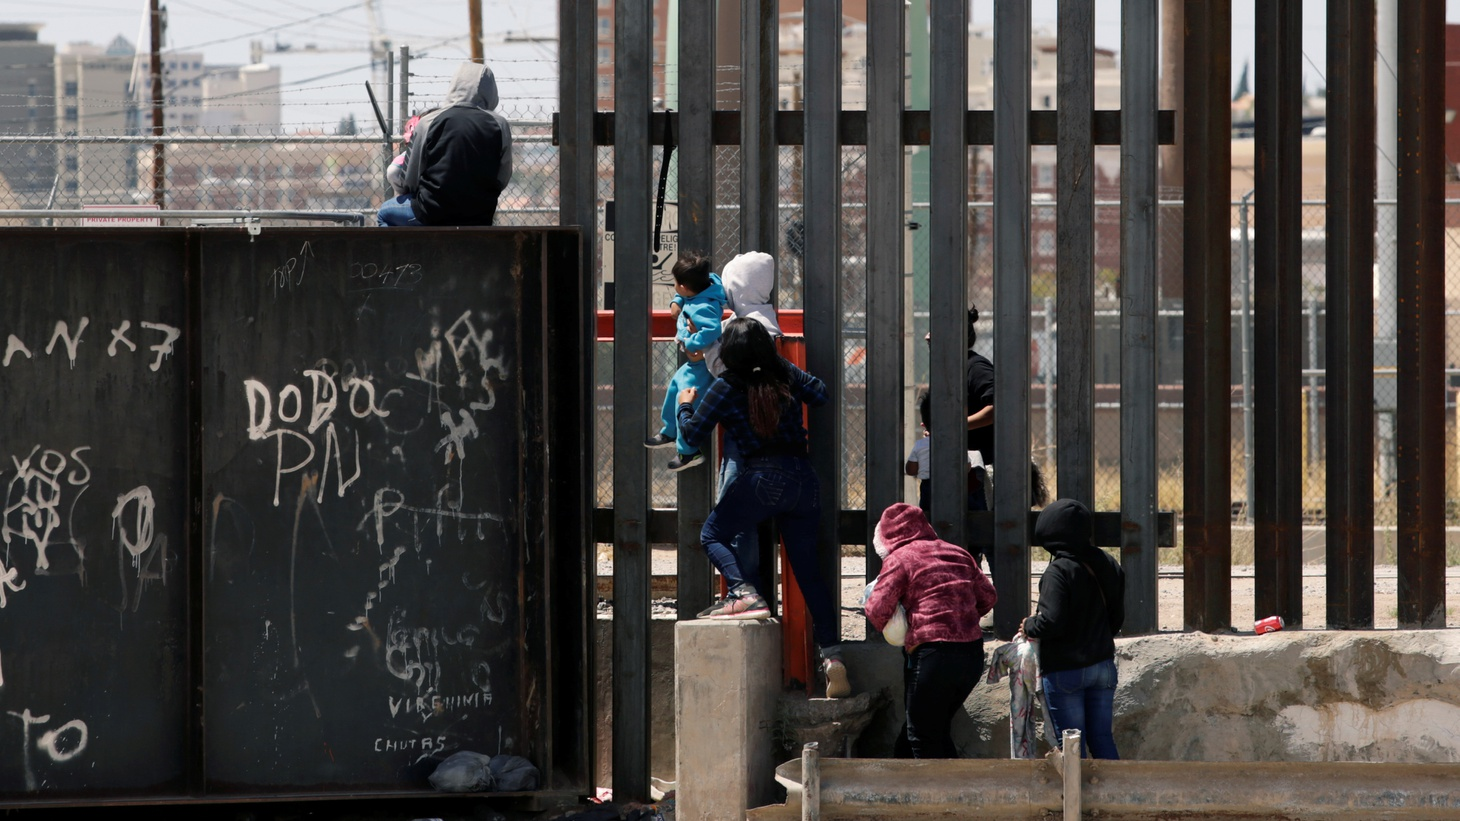 Migrants jump over the border wall to cross the U.S. from Mexico, in Ciudad Juarez, Mexico, June 22, 2019.